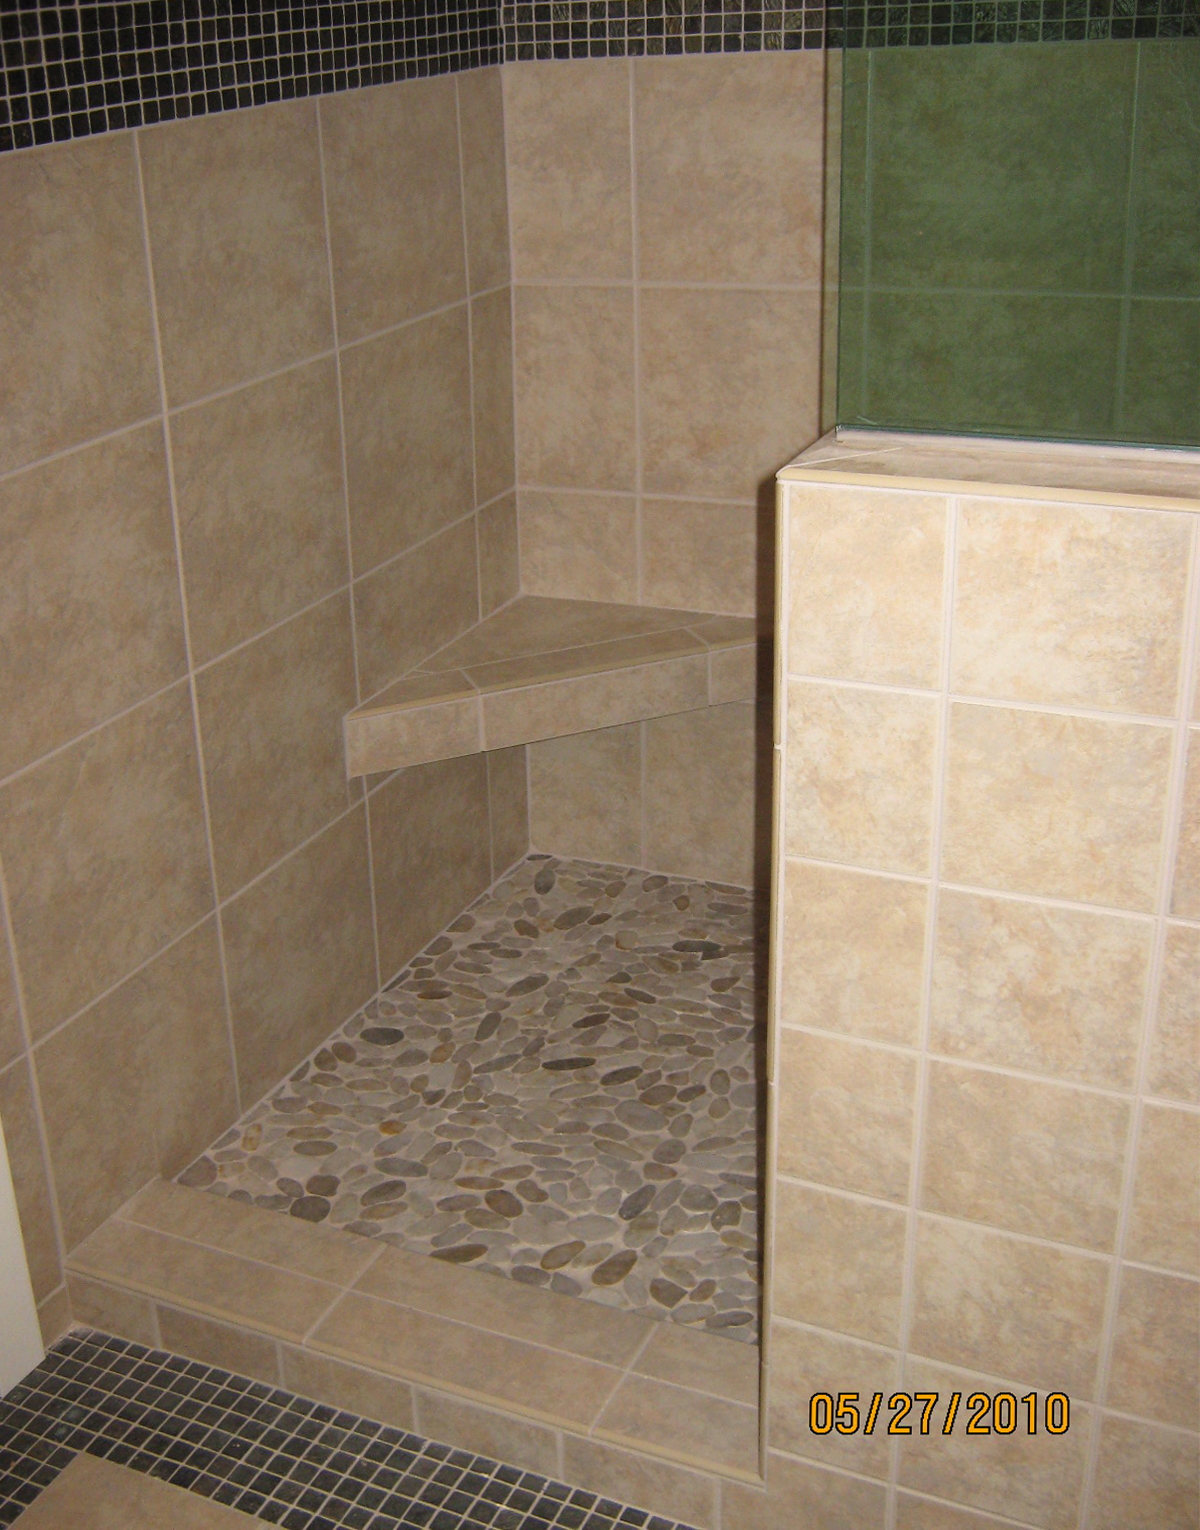 Accessible Tub - After